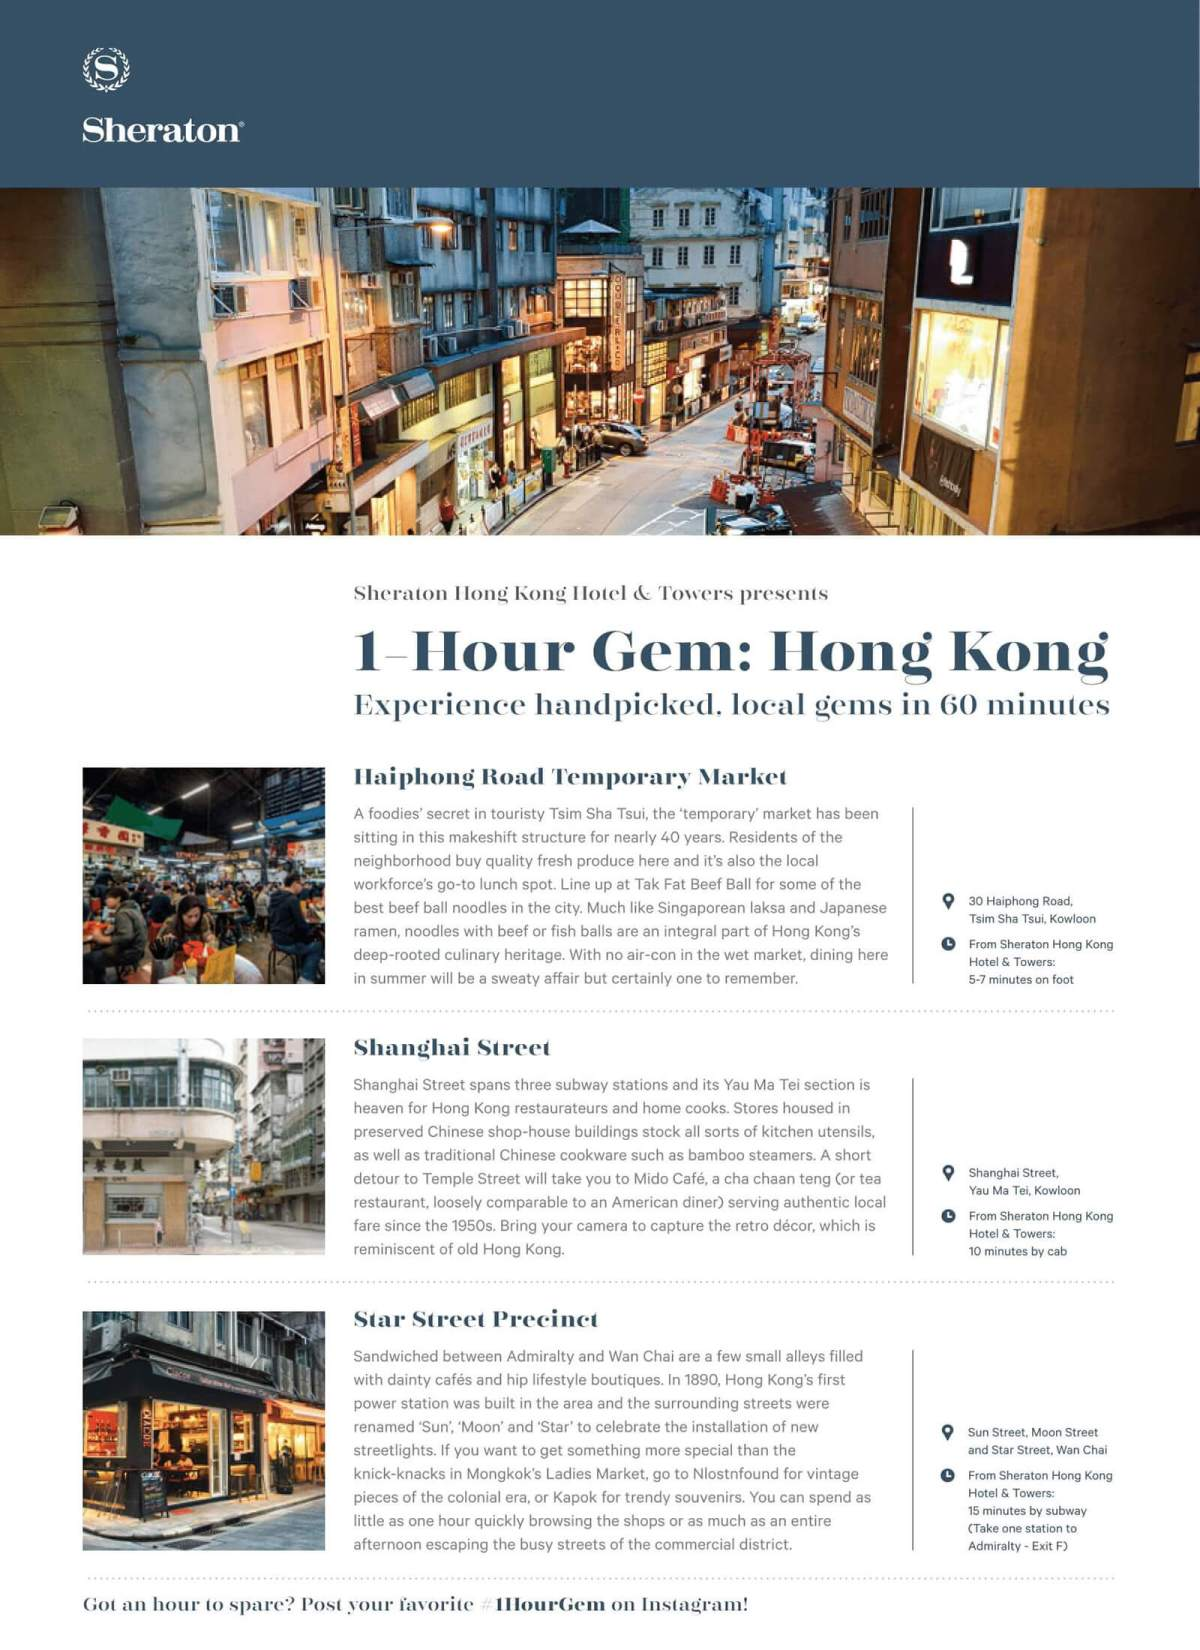 Hong Kong One Hour Gems by Sheraton Towers